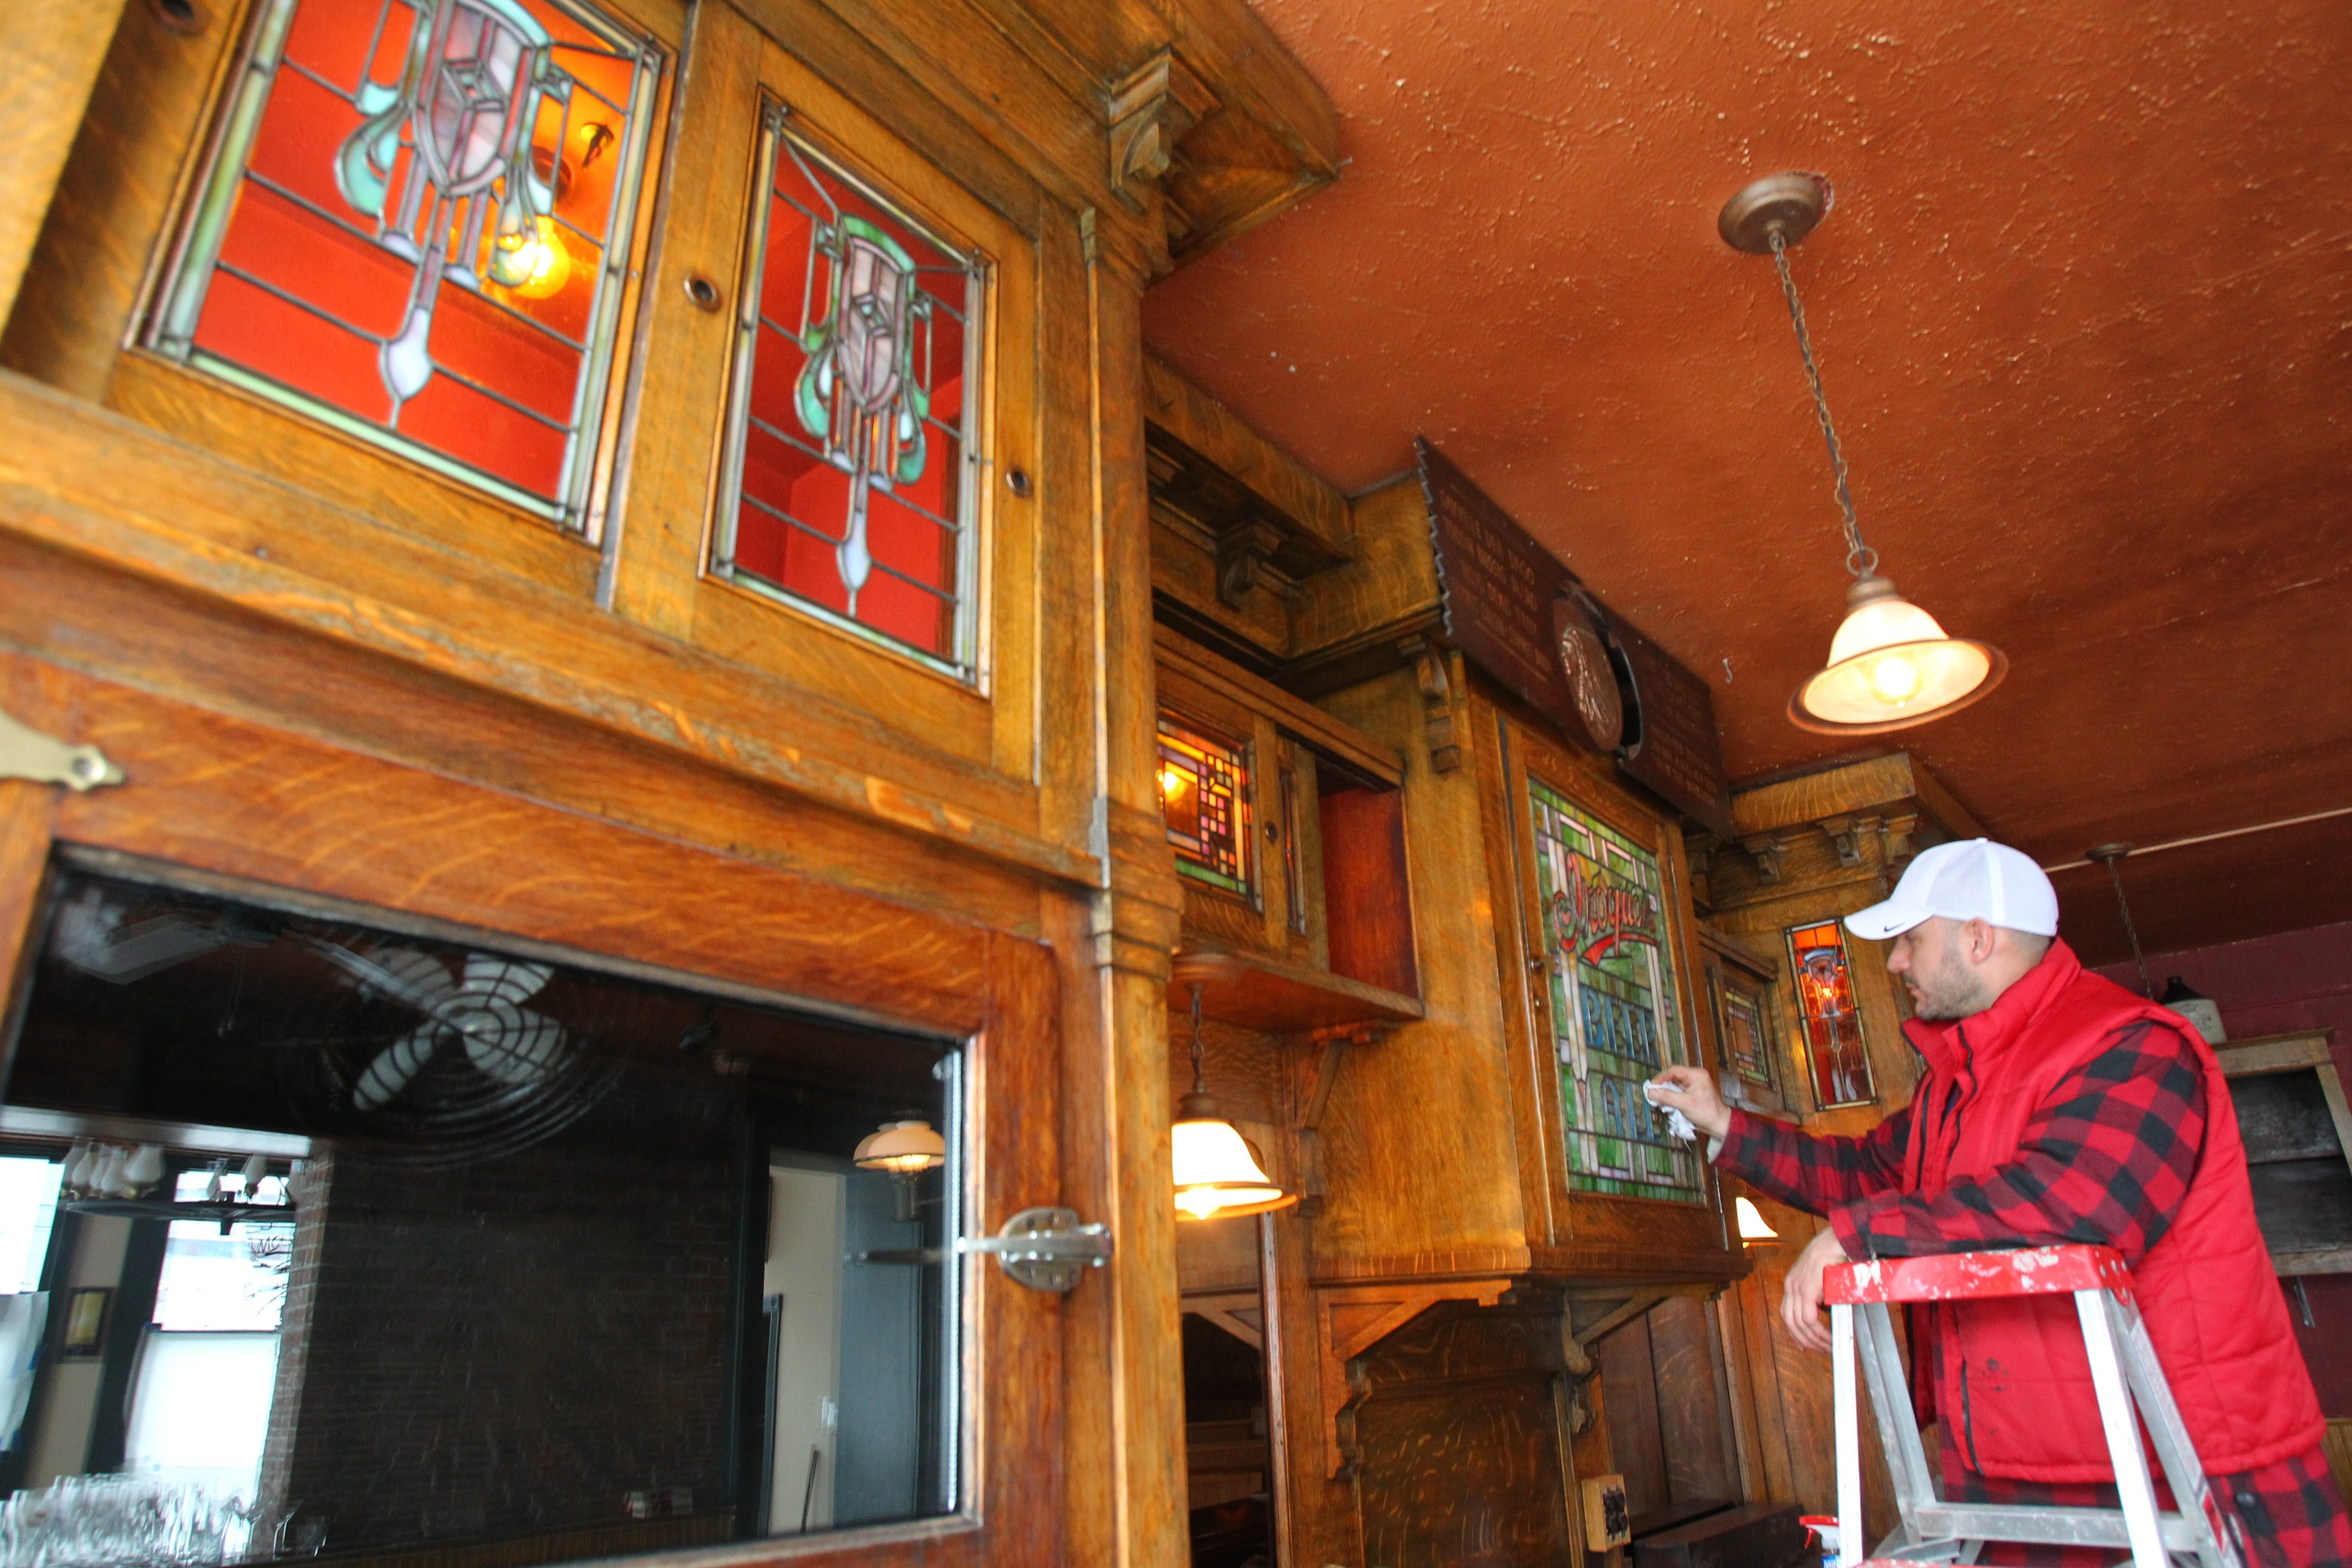 Sal Buscaglia cleans the antique bar at Ulrich's Friday. The tavern will be open for lunch and dinner served from a new kitchen.